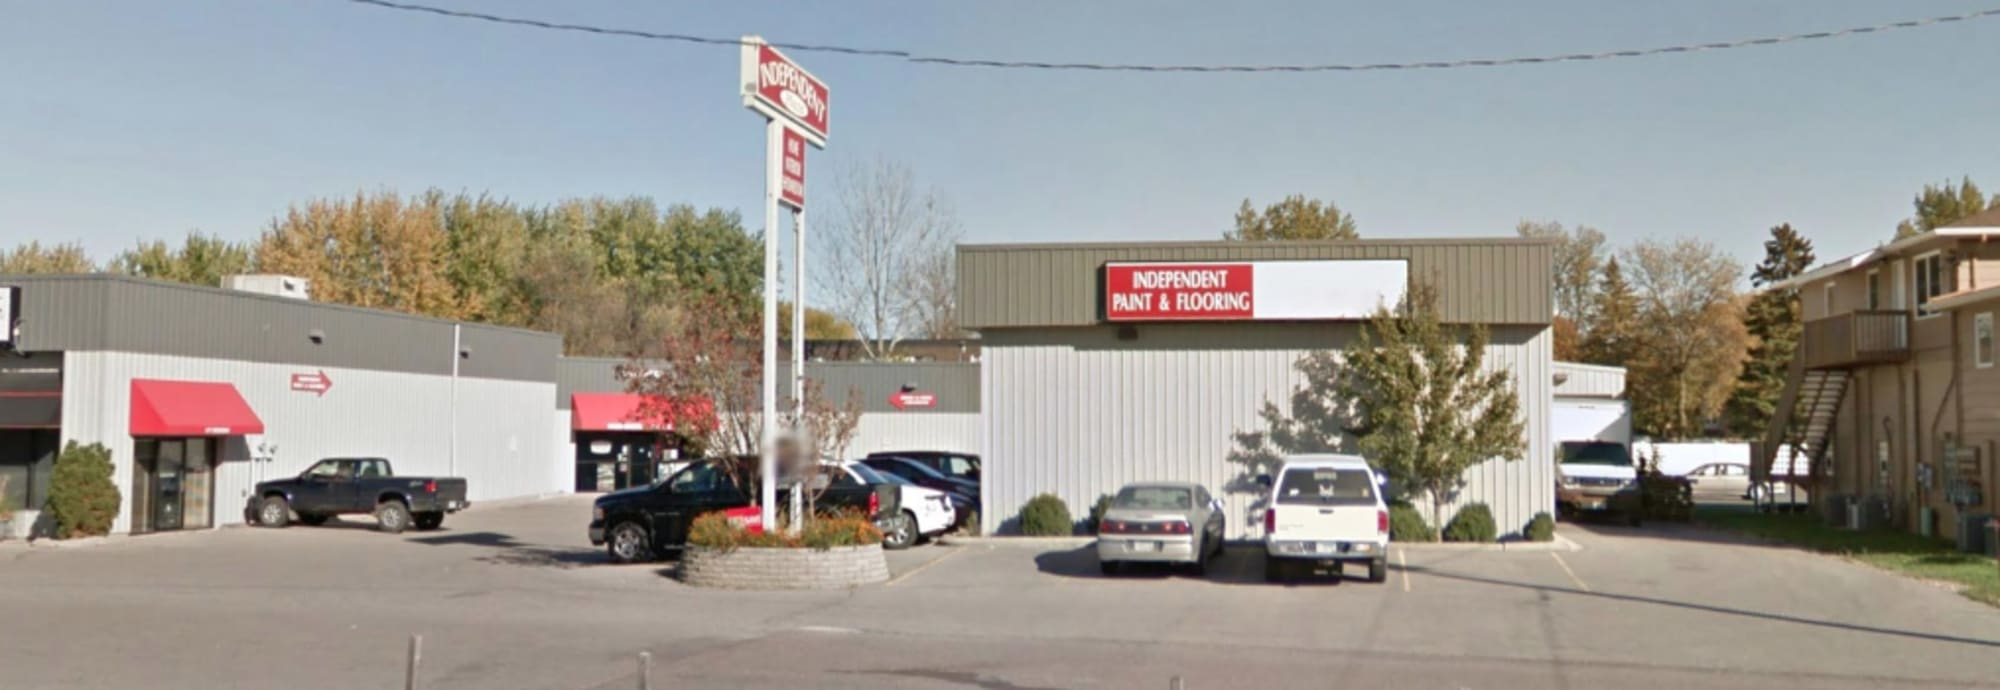 Independent Paint & Flooring - 219 S Victory Dr Mankato, MN 56001